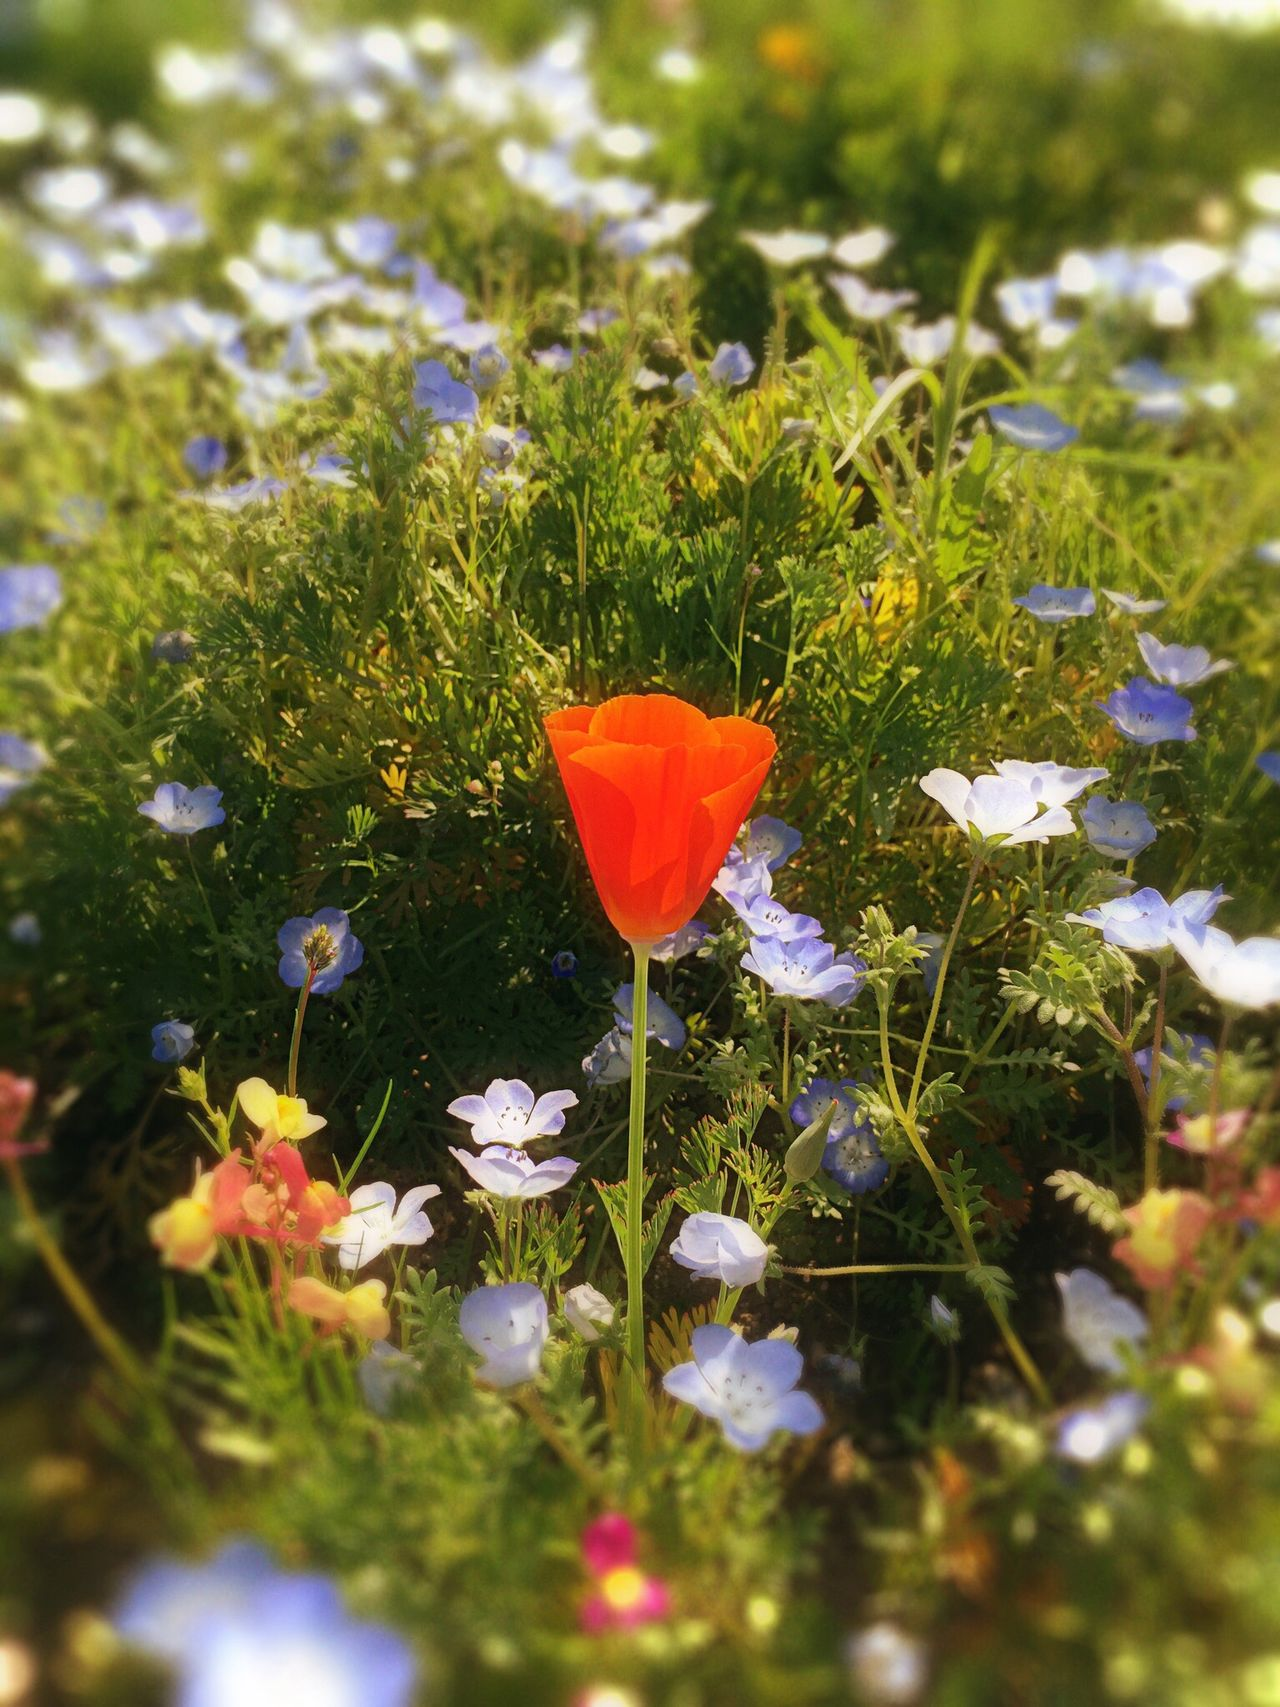 Alone and beautiful California Love My Favorite Photo California Poppy Flowers Flowerporn Flower Collection Flowers,Plants & Garden Flower Porn Flower Head Flowers, Nature And Beauty Flower Photography Flowers_collection Flowerlovers Flowerpower l Flower Power Sunny Garden Garden Photography Nemophila